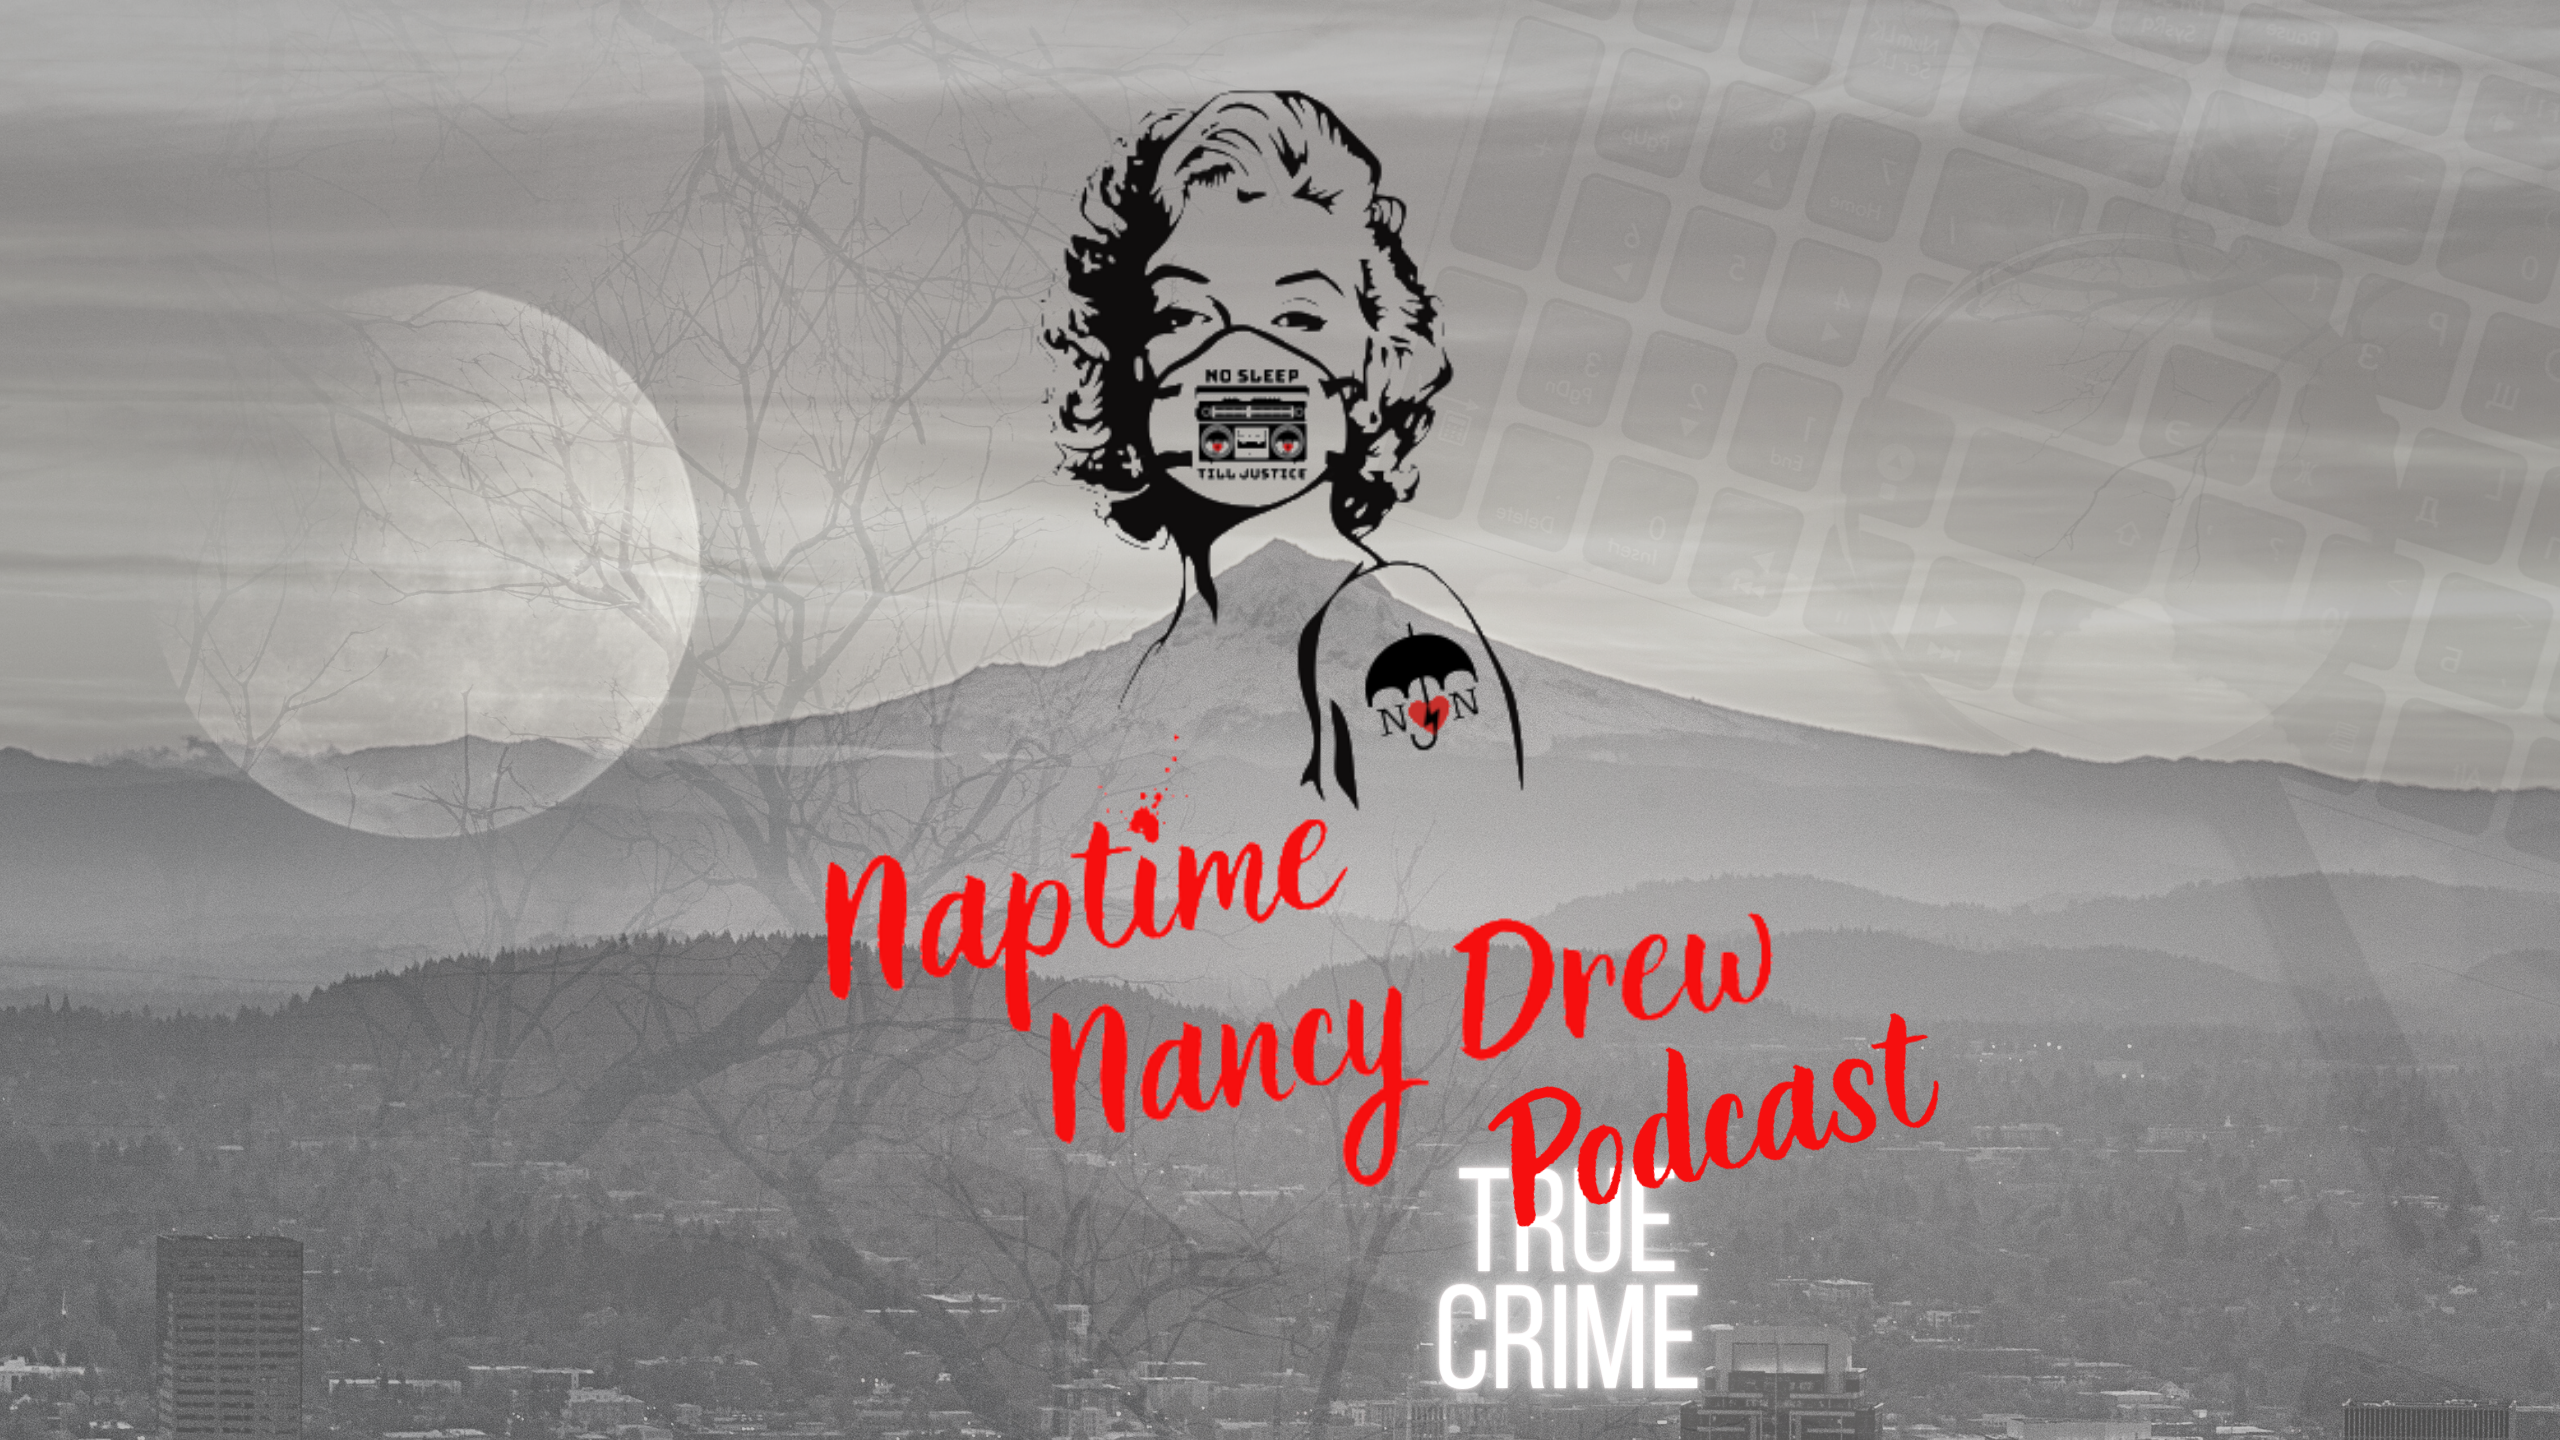 Naptime Nancy Drew Podcast